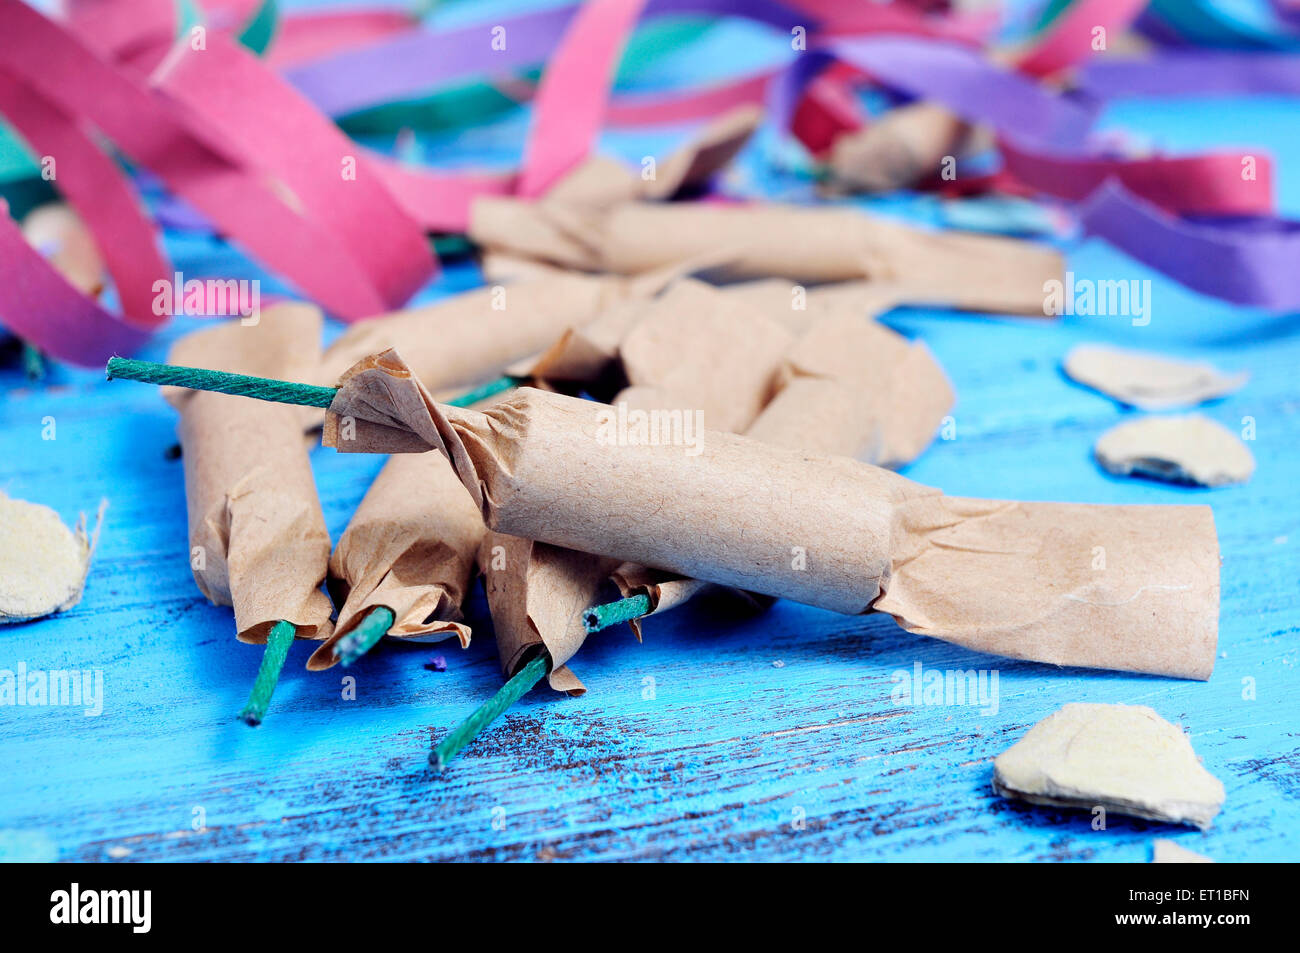 some firecrackers, and confetti and streamers of different colors on a rustic blue wooden surface - Stock Image